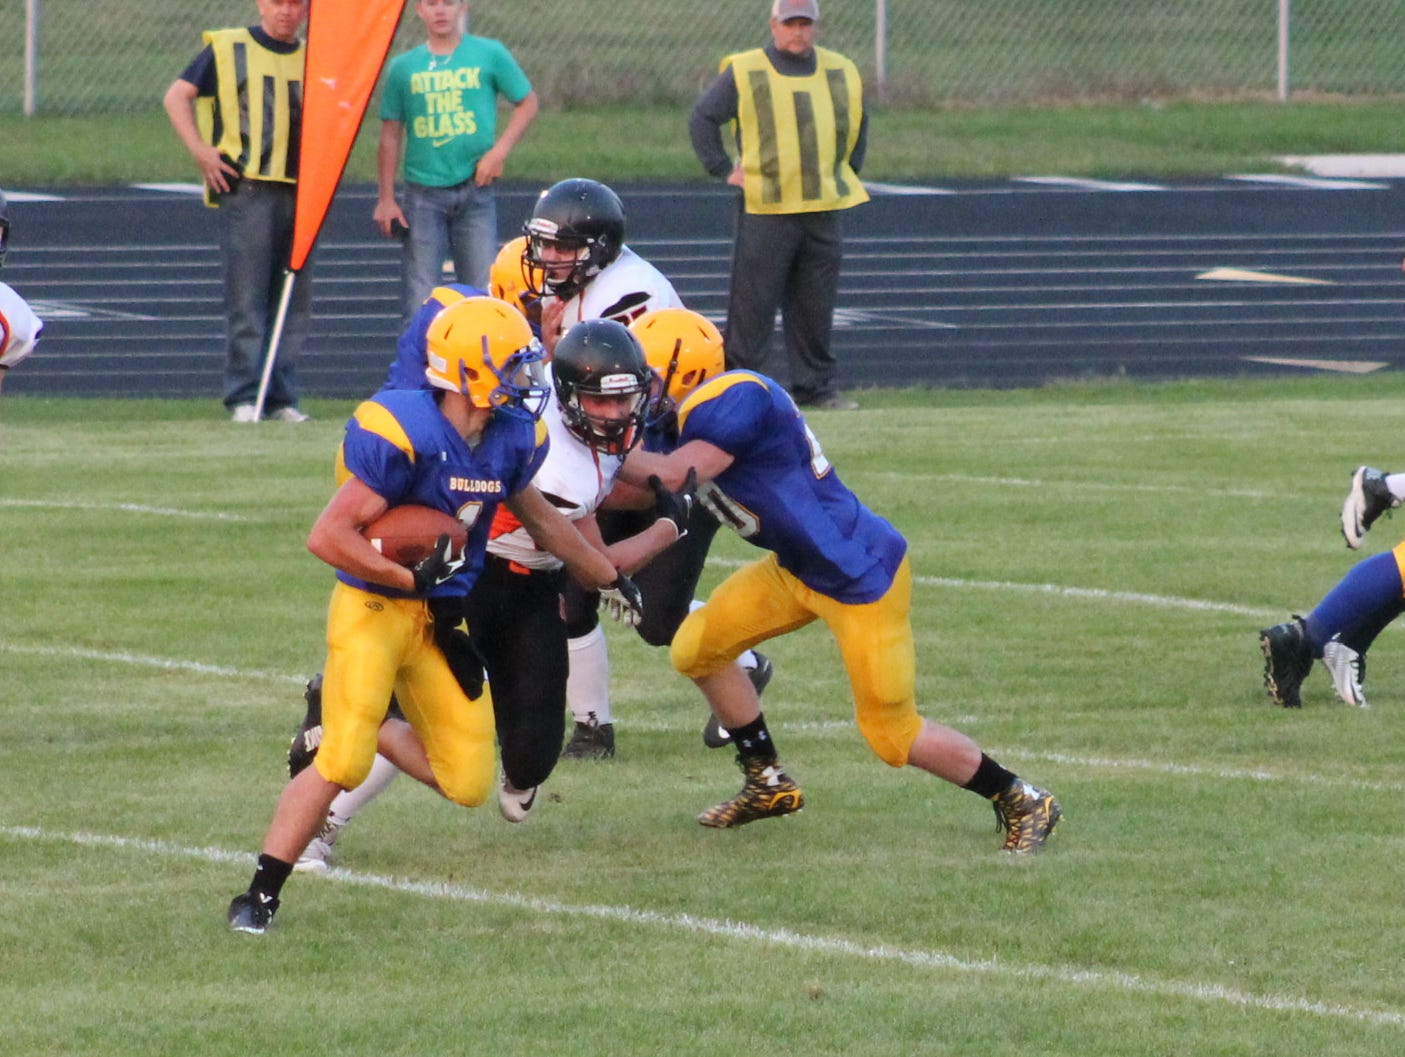 Baltic take on Howard earlier this season. The Bulldogs won the game 42-0.